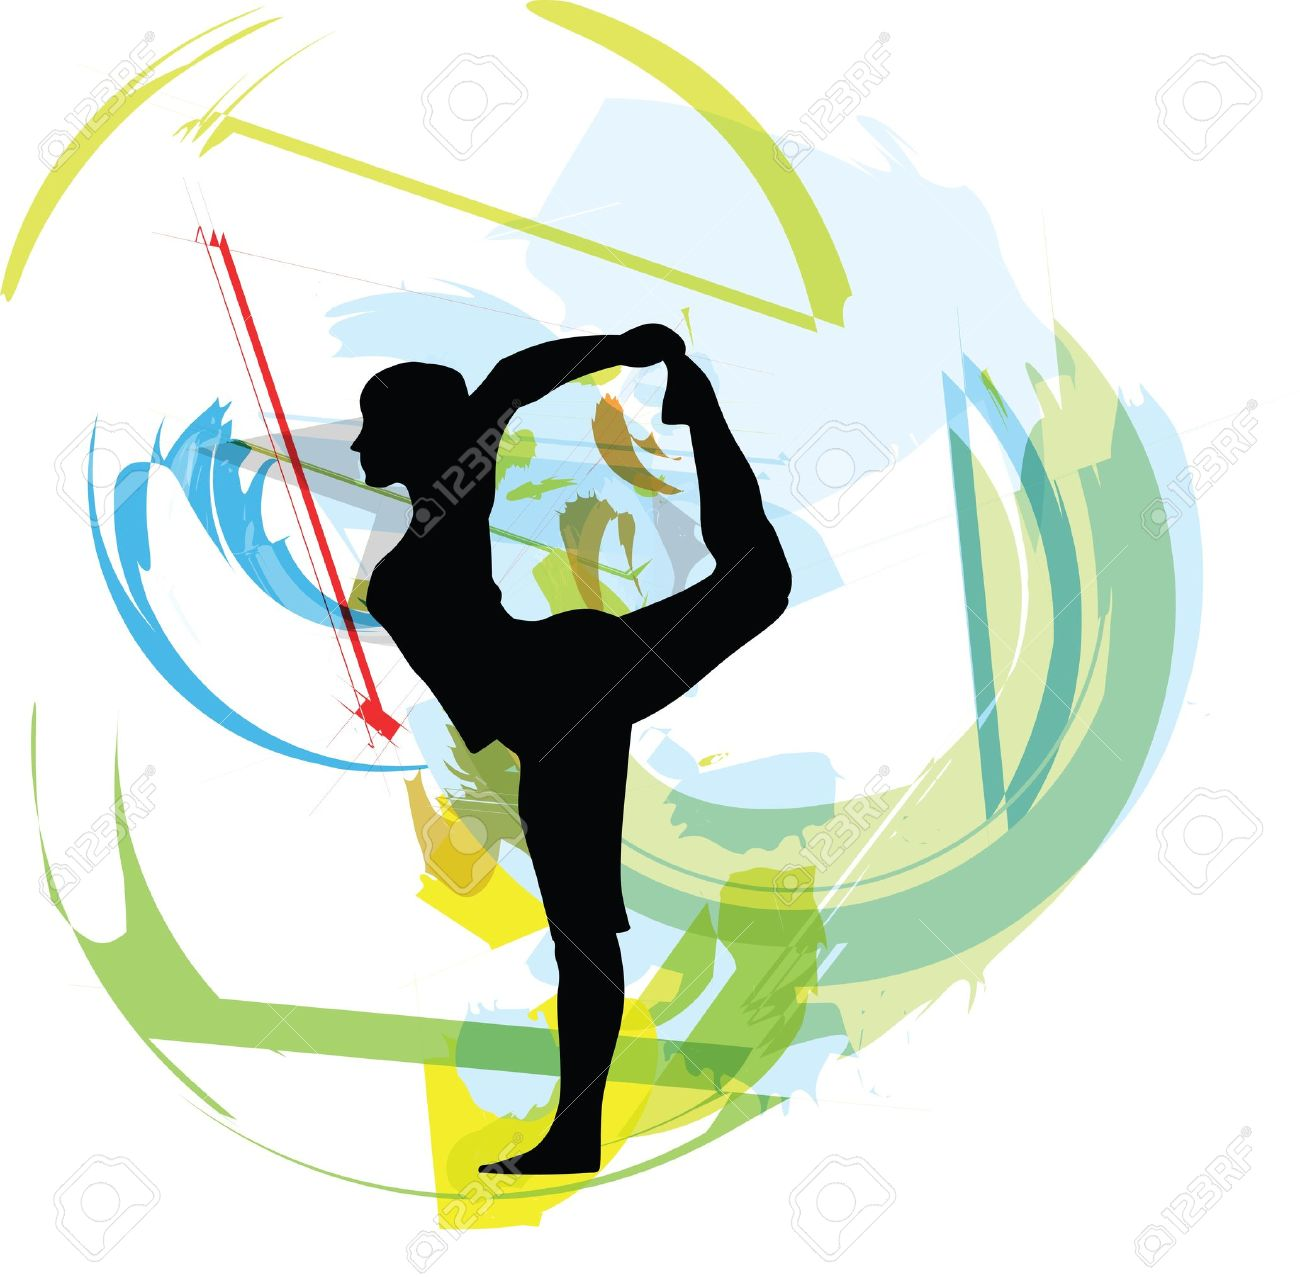 Yoga Illustration Royalty Free Cliparts, Vectors, And Stock ...